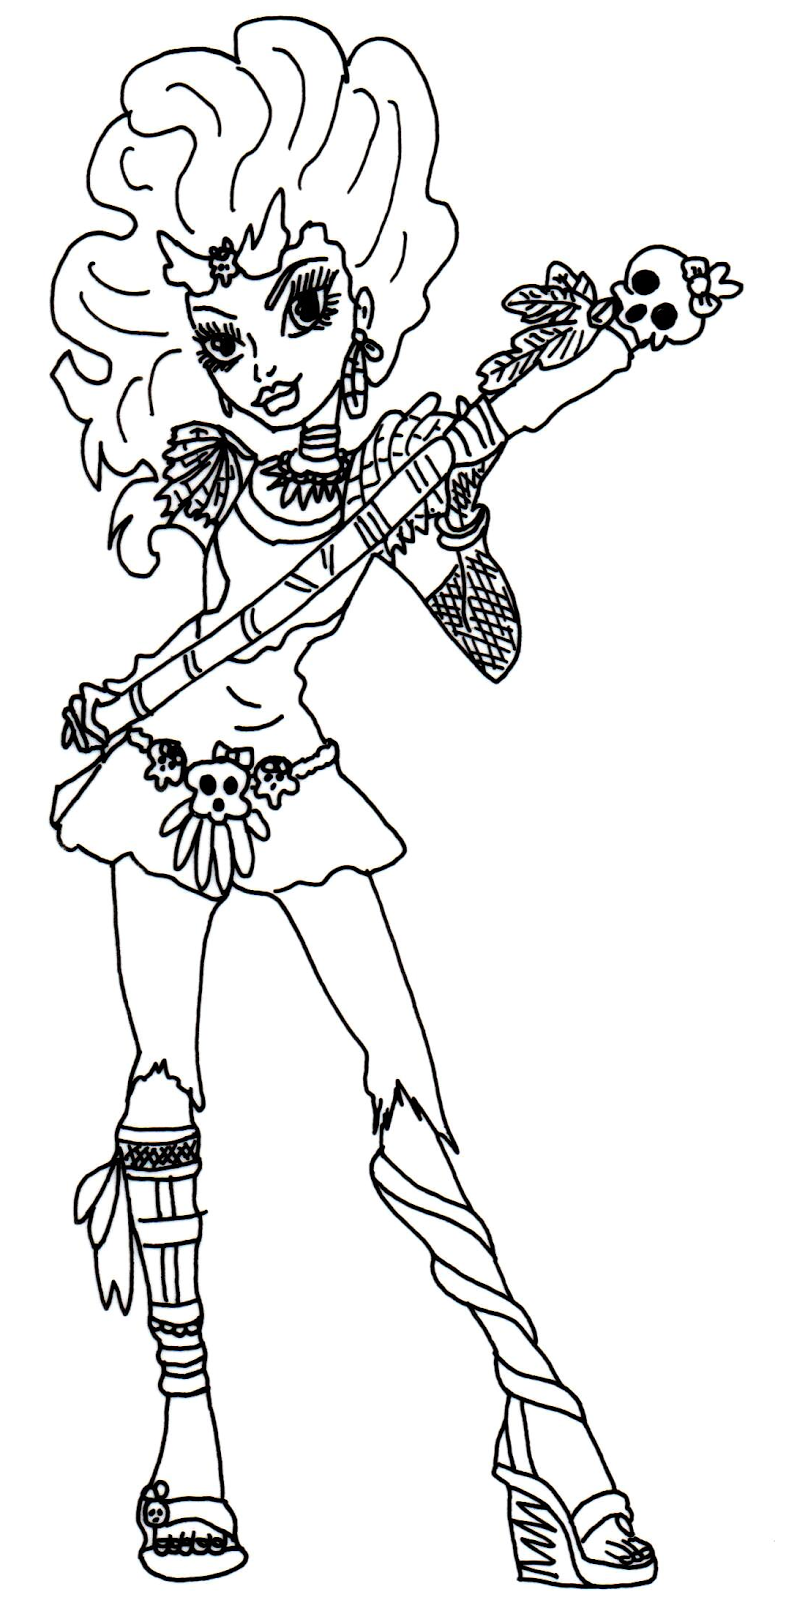 new monster high dolls 2014 coloring pages: Jane Boolittle